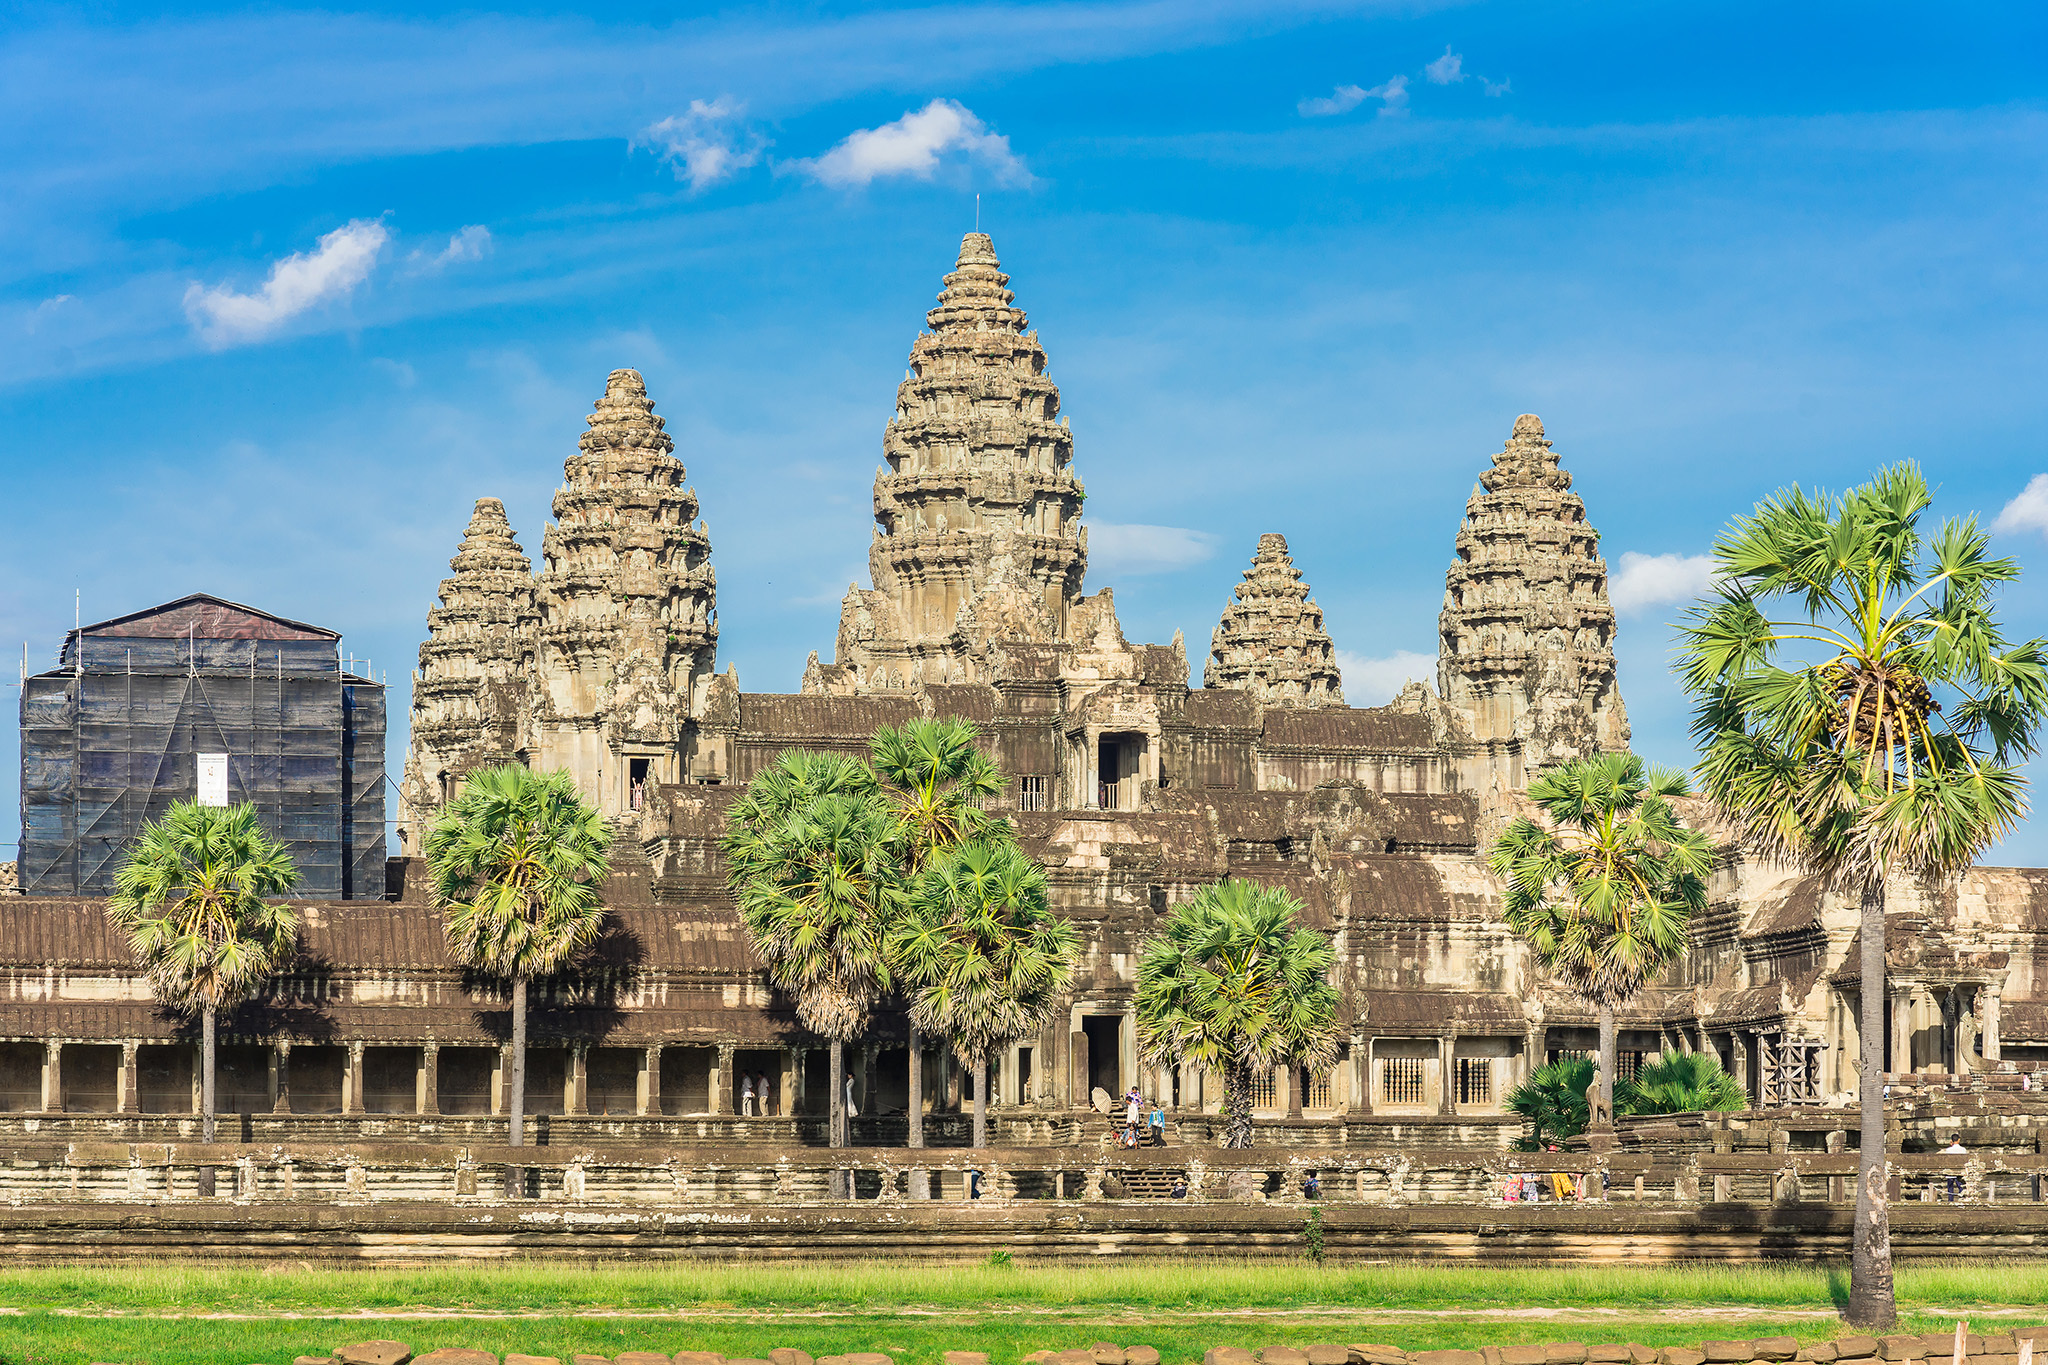 Temples of Angkor, eitw